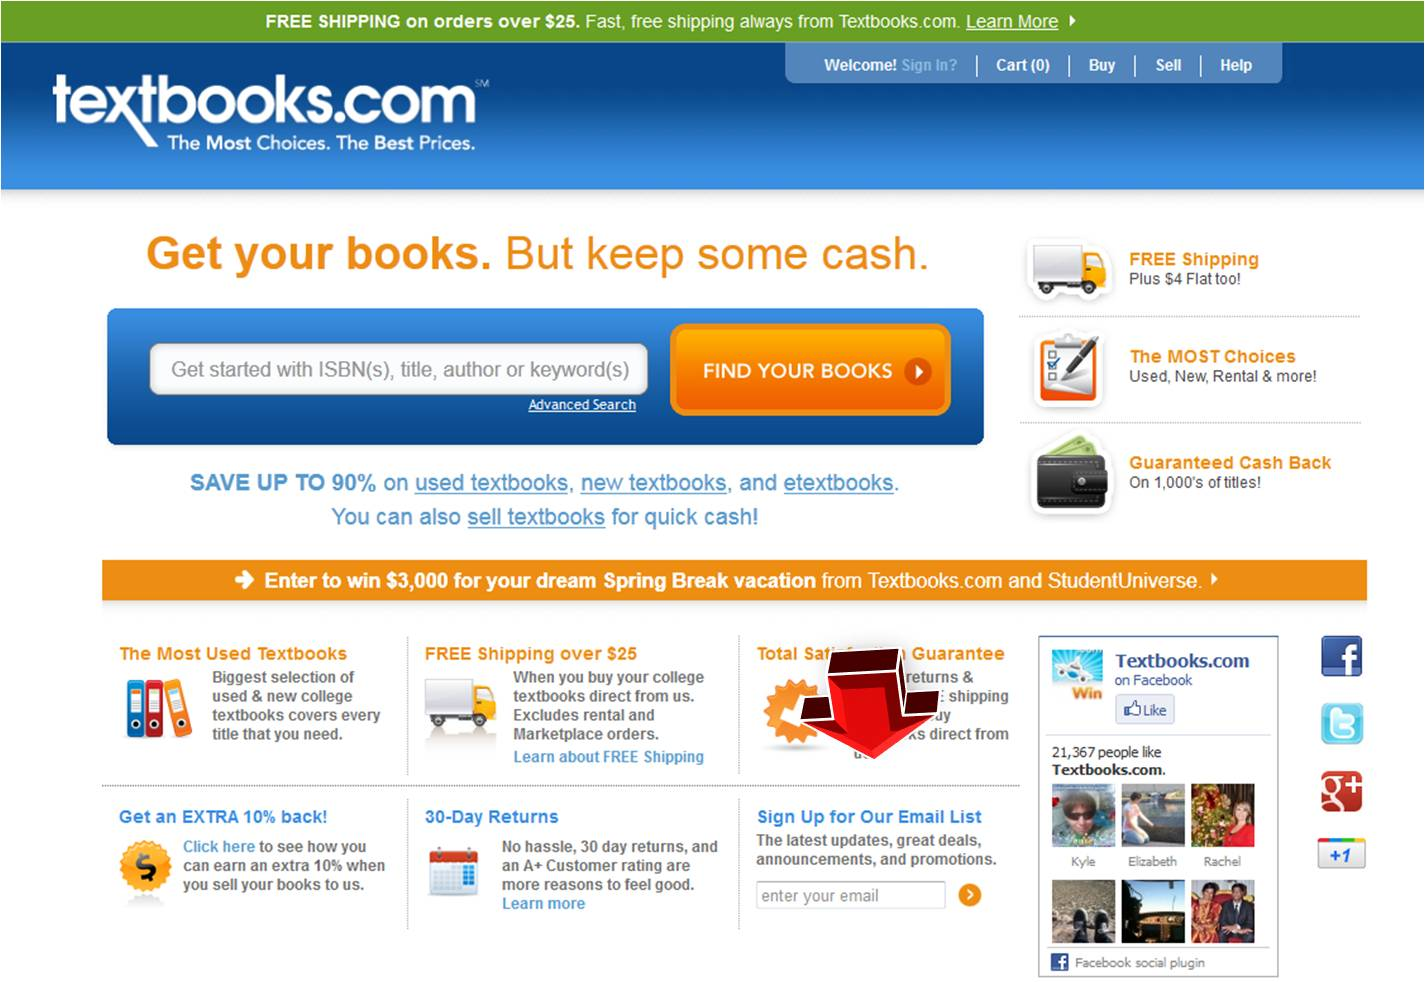 Find and share books coupon codes and promo codes for great discounts at thousands of online stores.